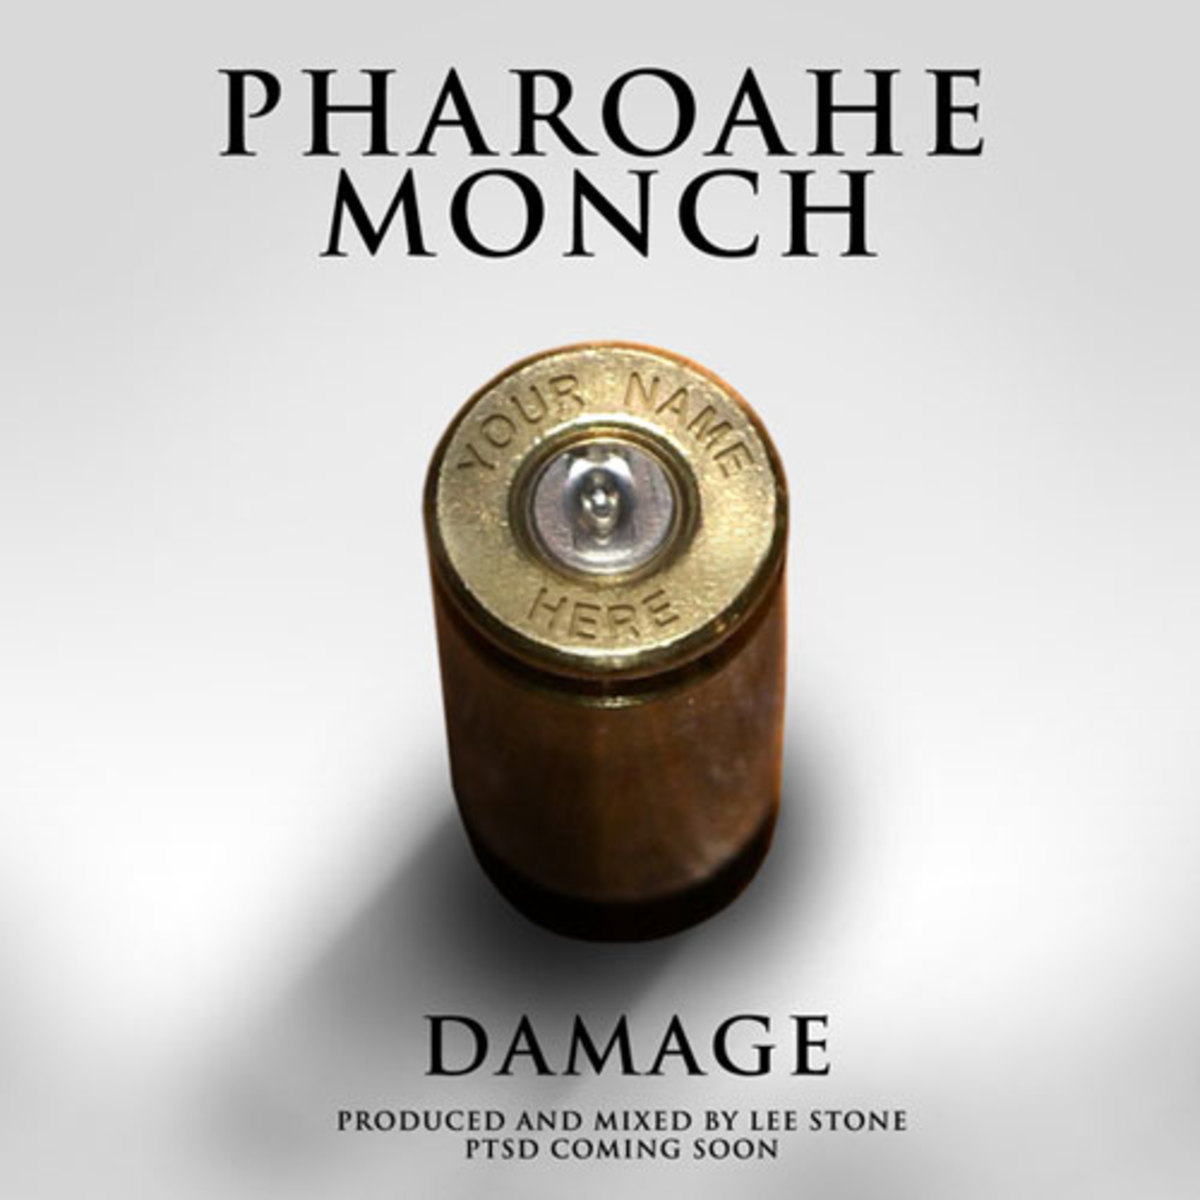 pharoahemonch-damage.jpg